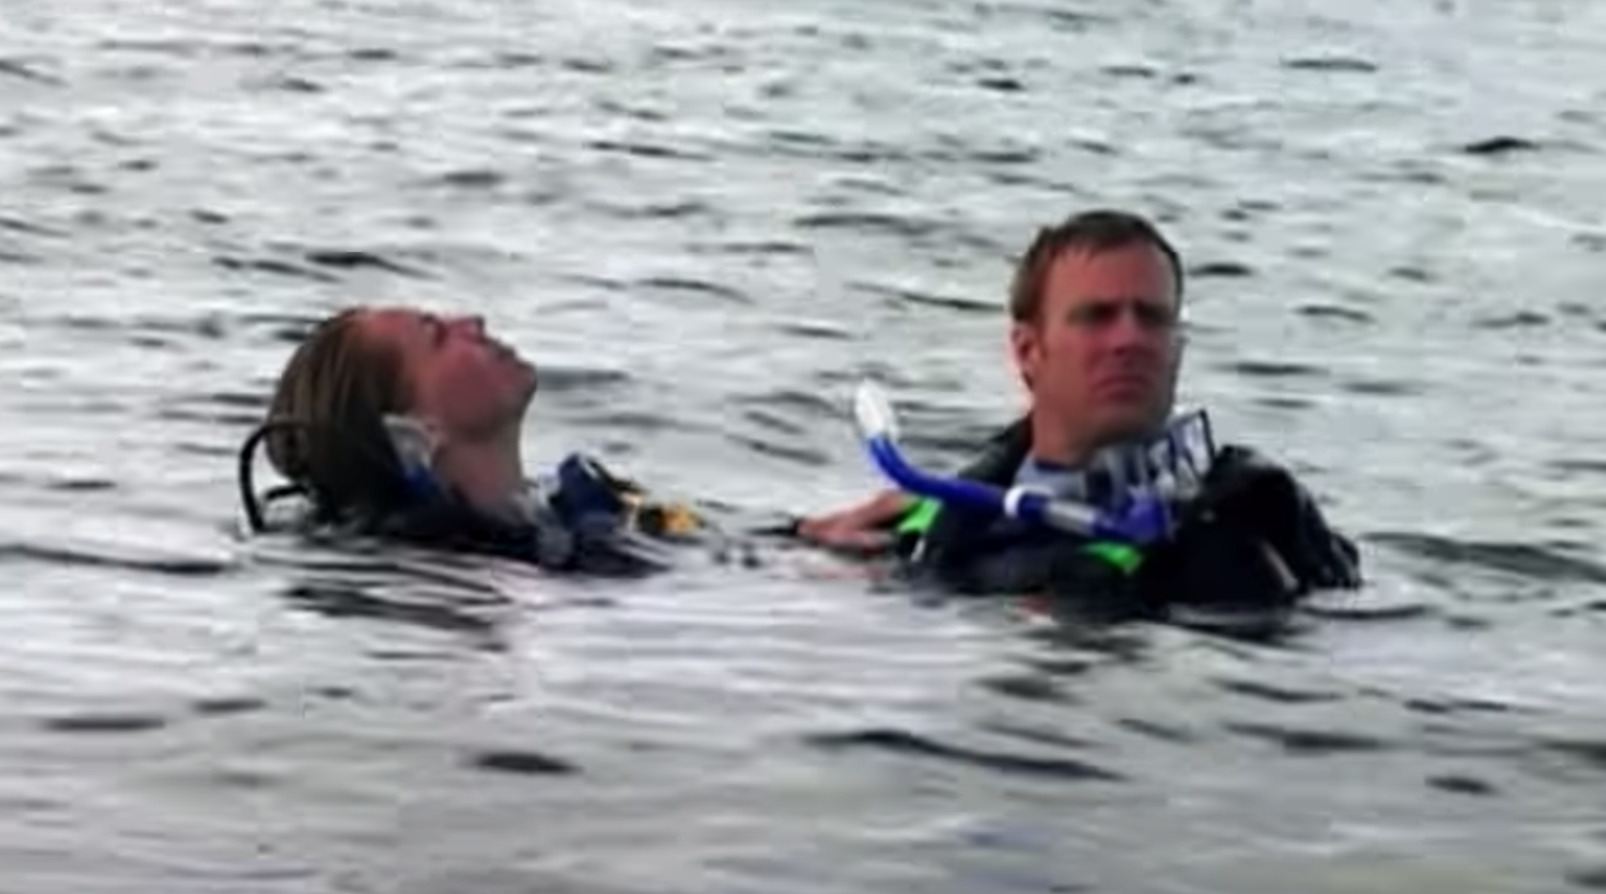 """Daniel and Susan abandoned in the ocean while wearing scuba gear in """"Open Water"""""""